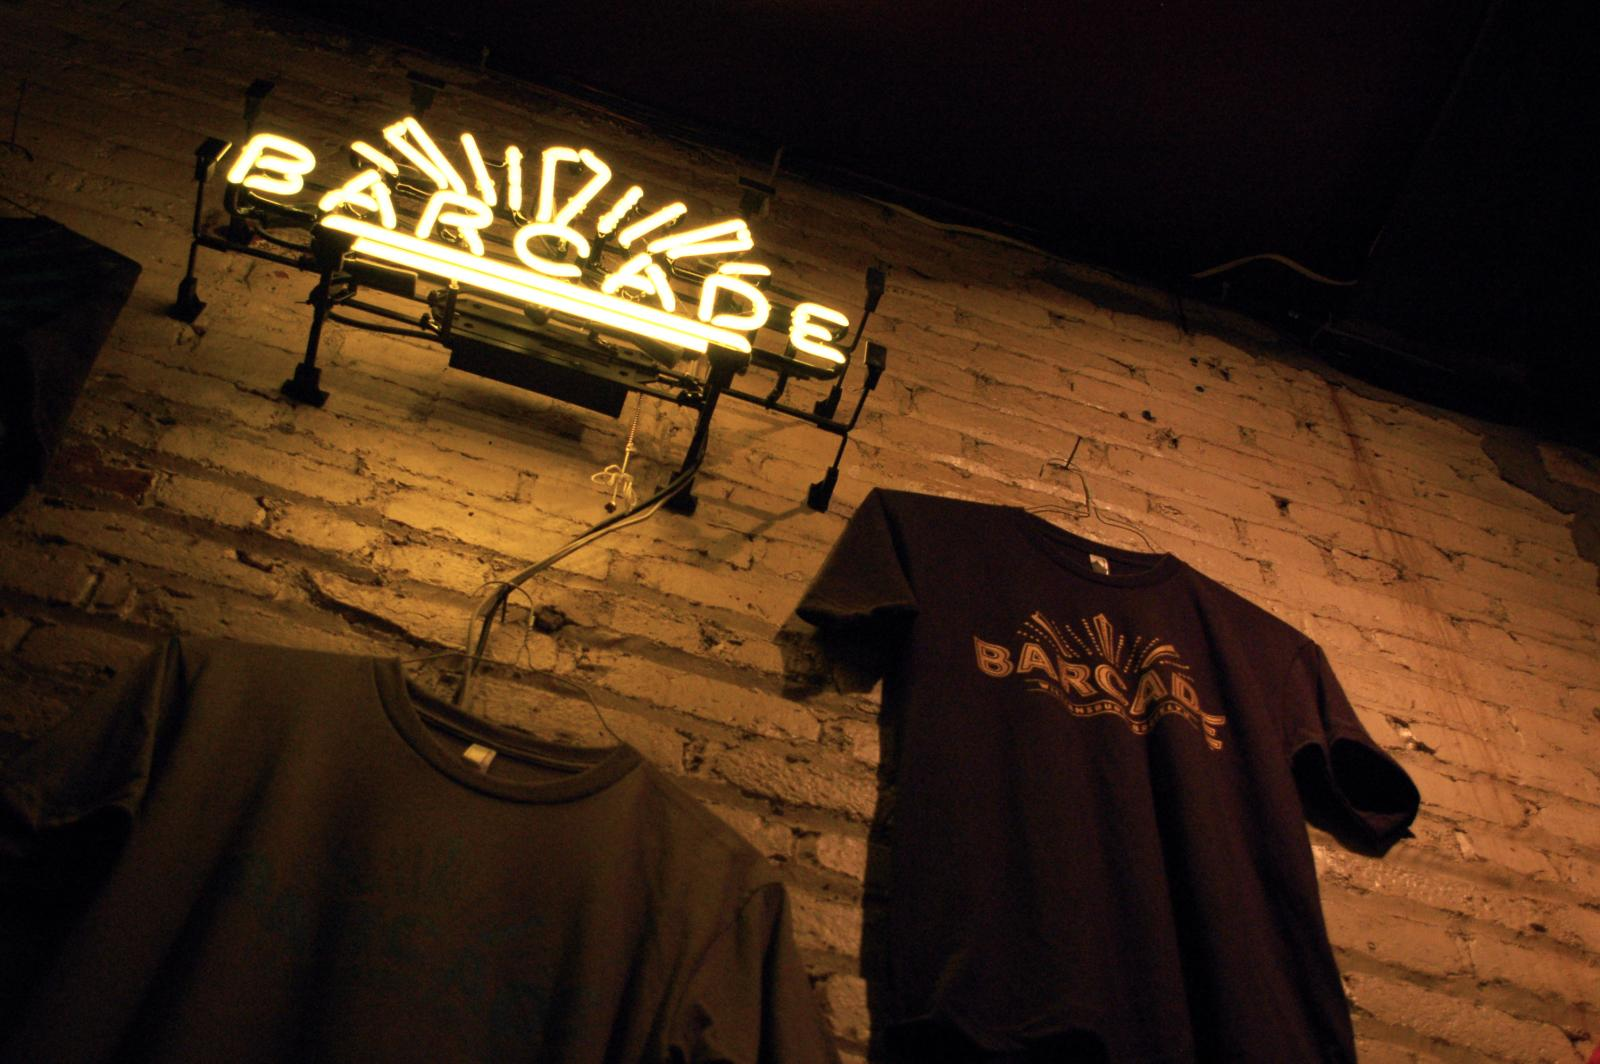 Barcade Opening A Fourth Location In The East Village